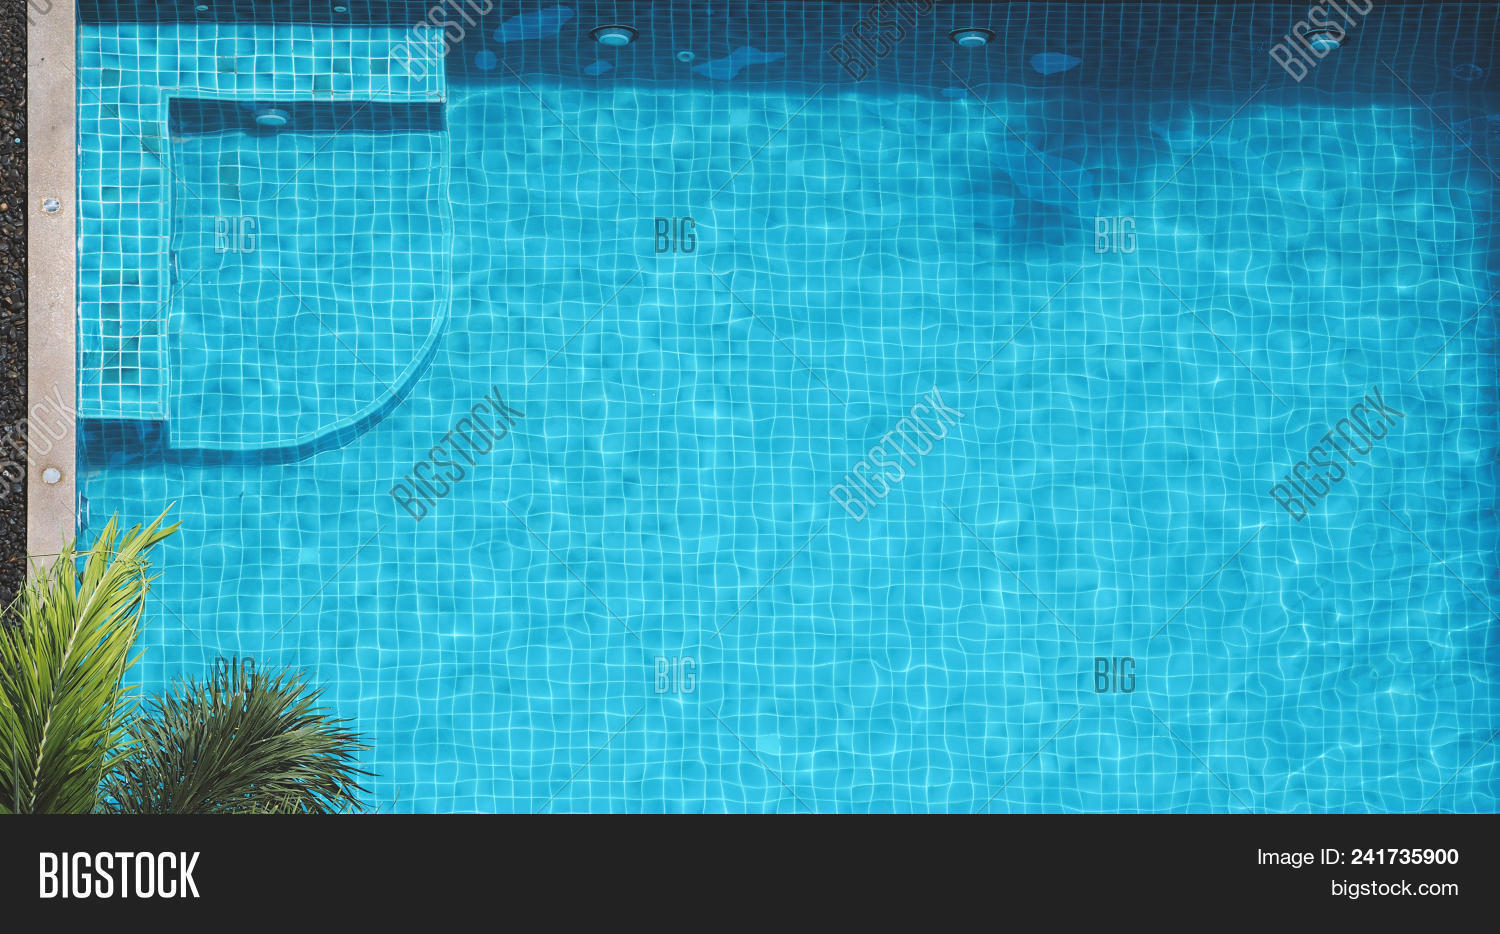 Swimming Pool Bubble Image & Photo (Free Trial) | Bigstock